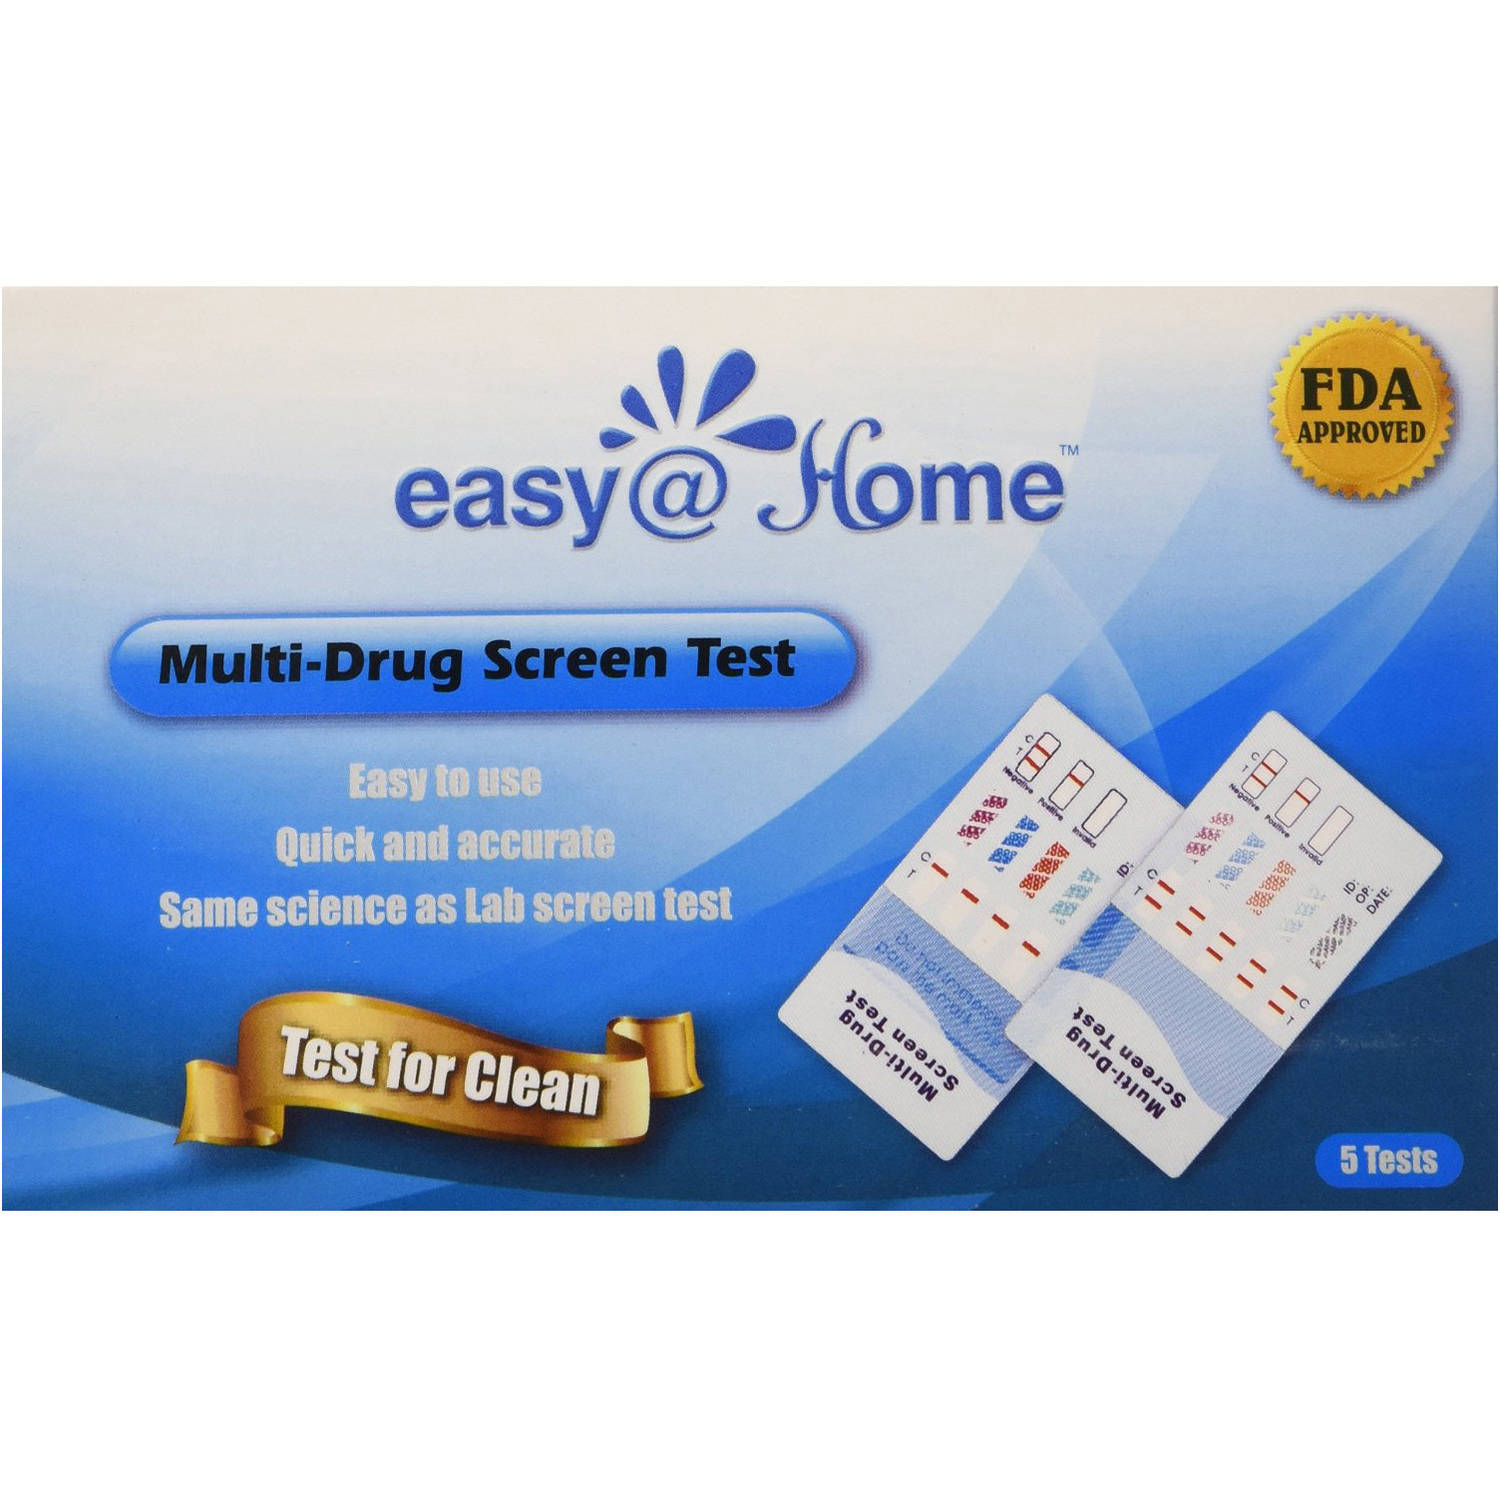 Easy@Home Multi-Drug Screen Test, #EDOAP-254, 5 count